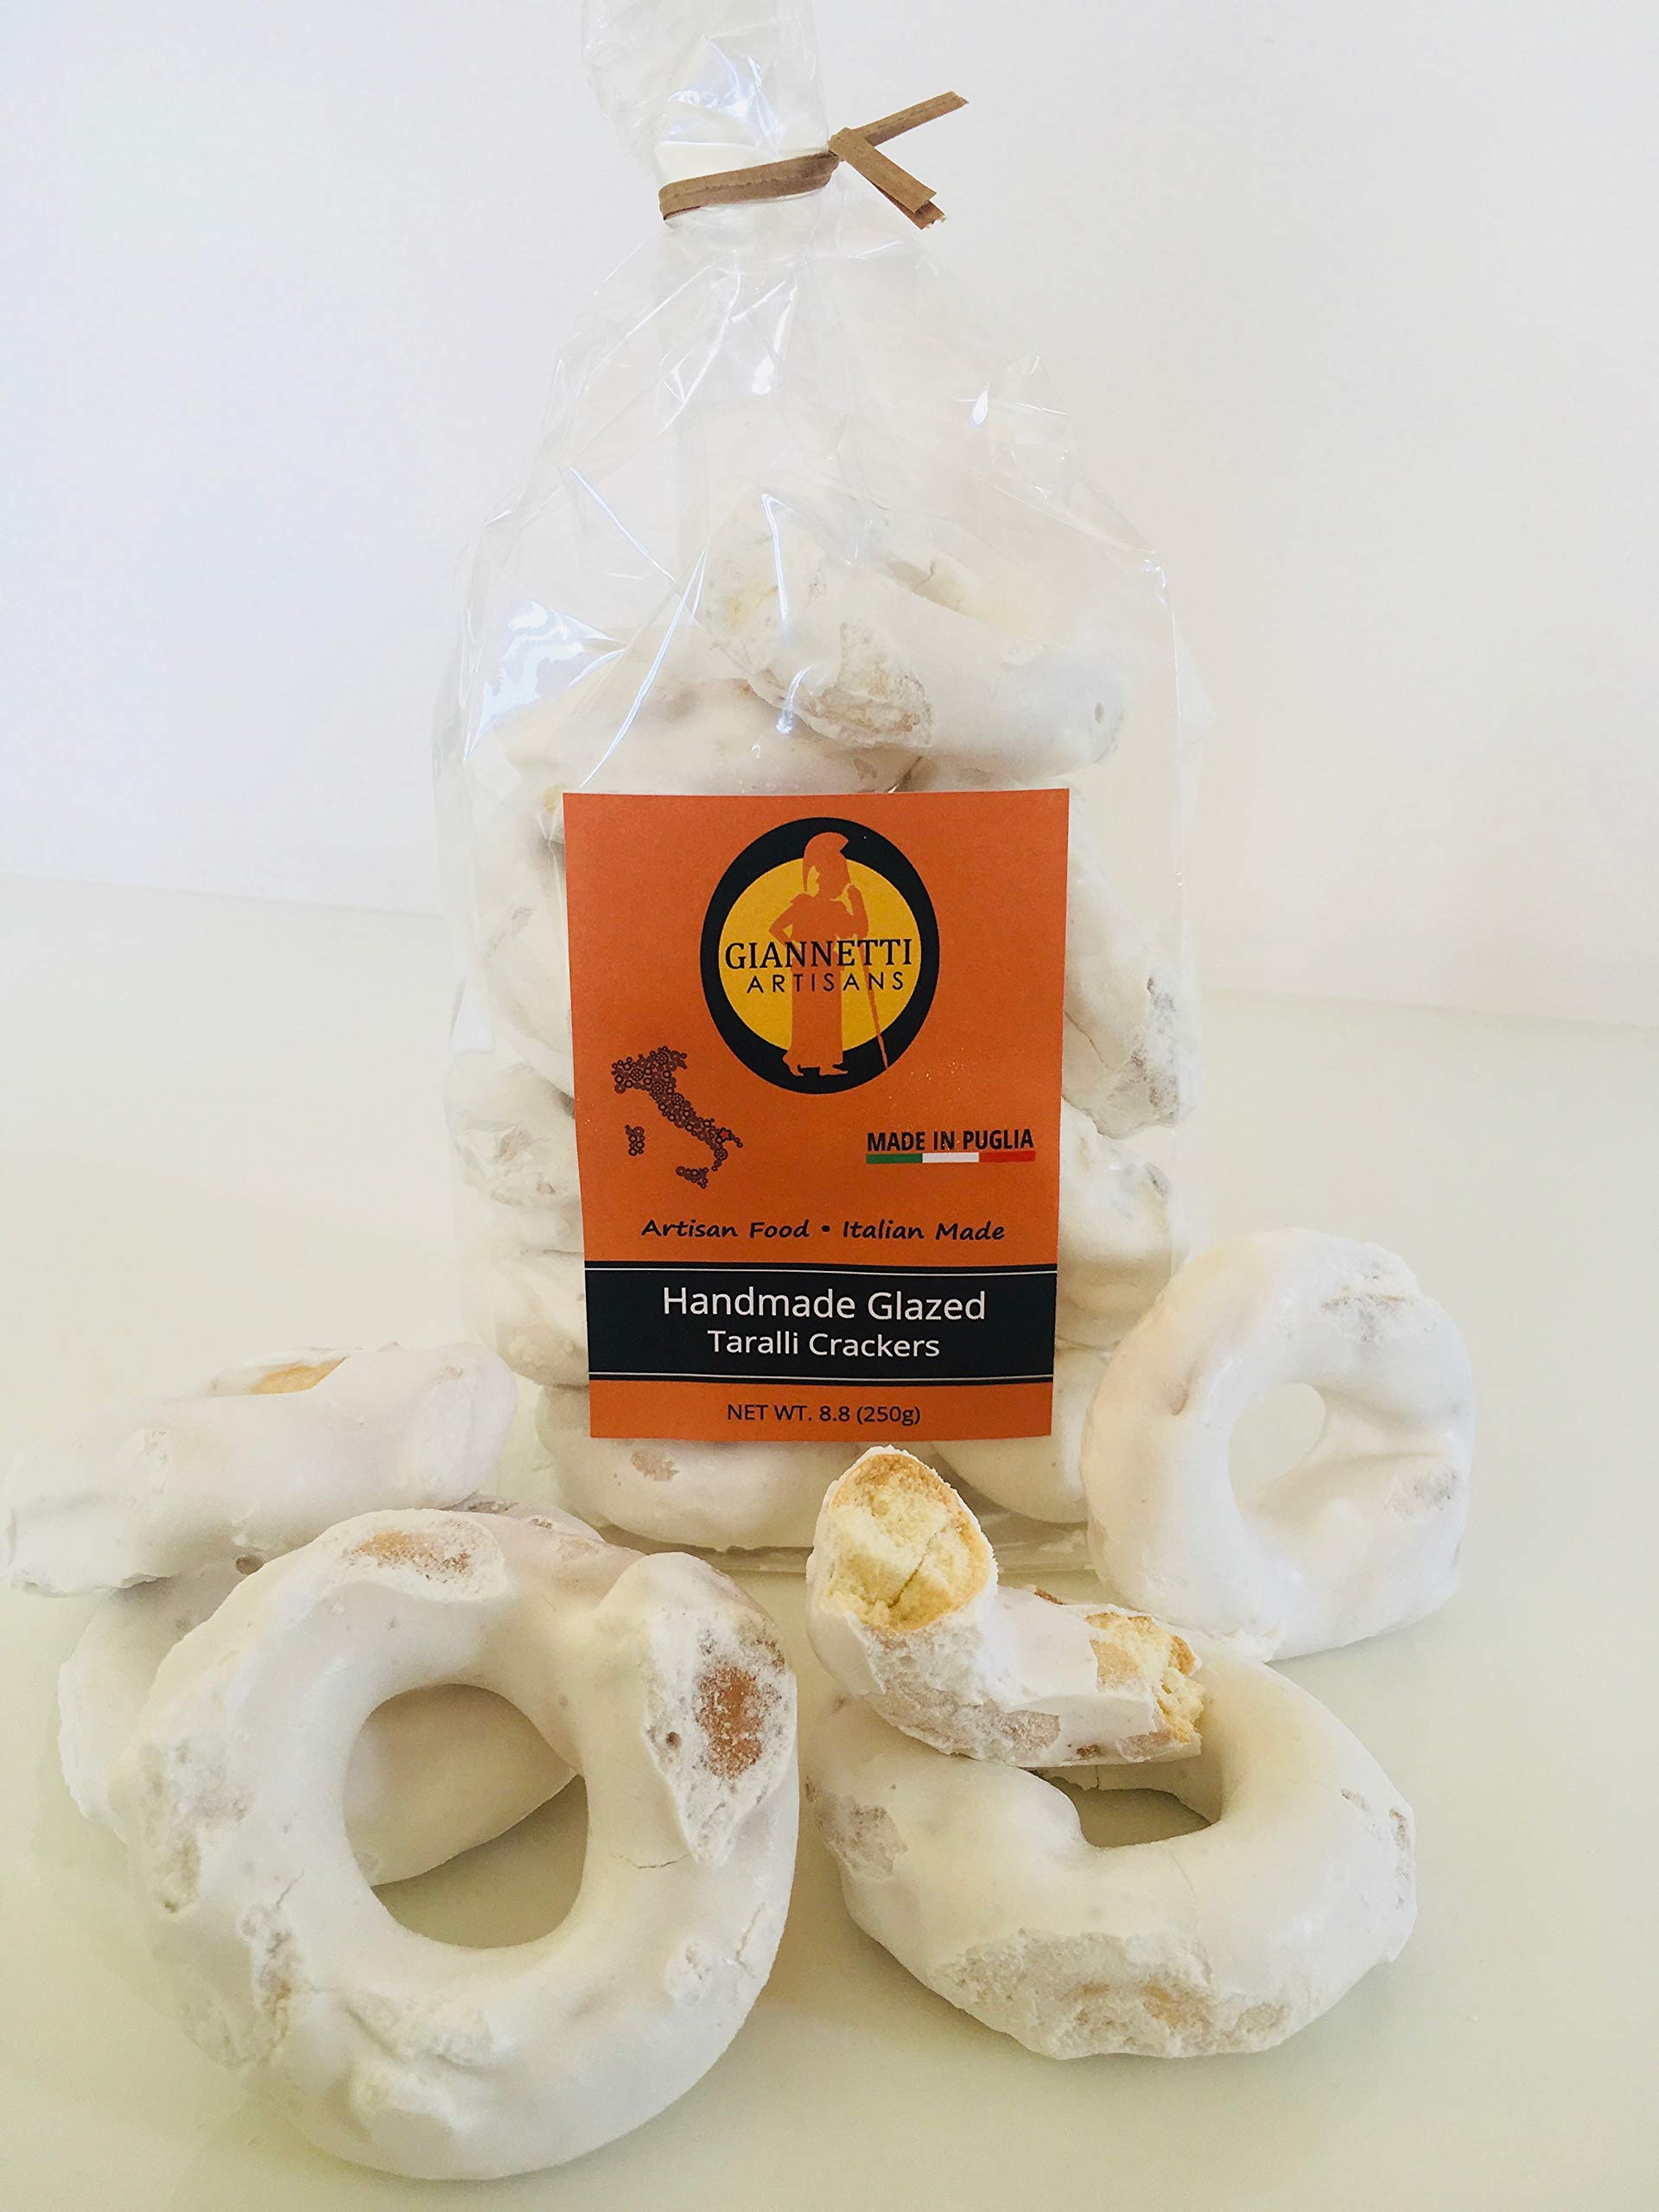 Giannetti Artisans Handmade Frosted Taralli Crackers from Apulia, Italy 8.8 oz (250 gr)